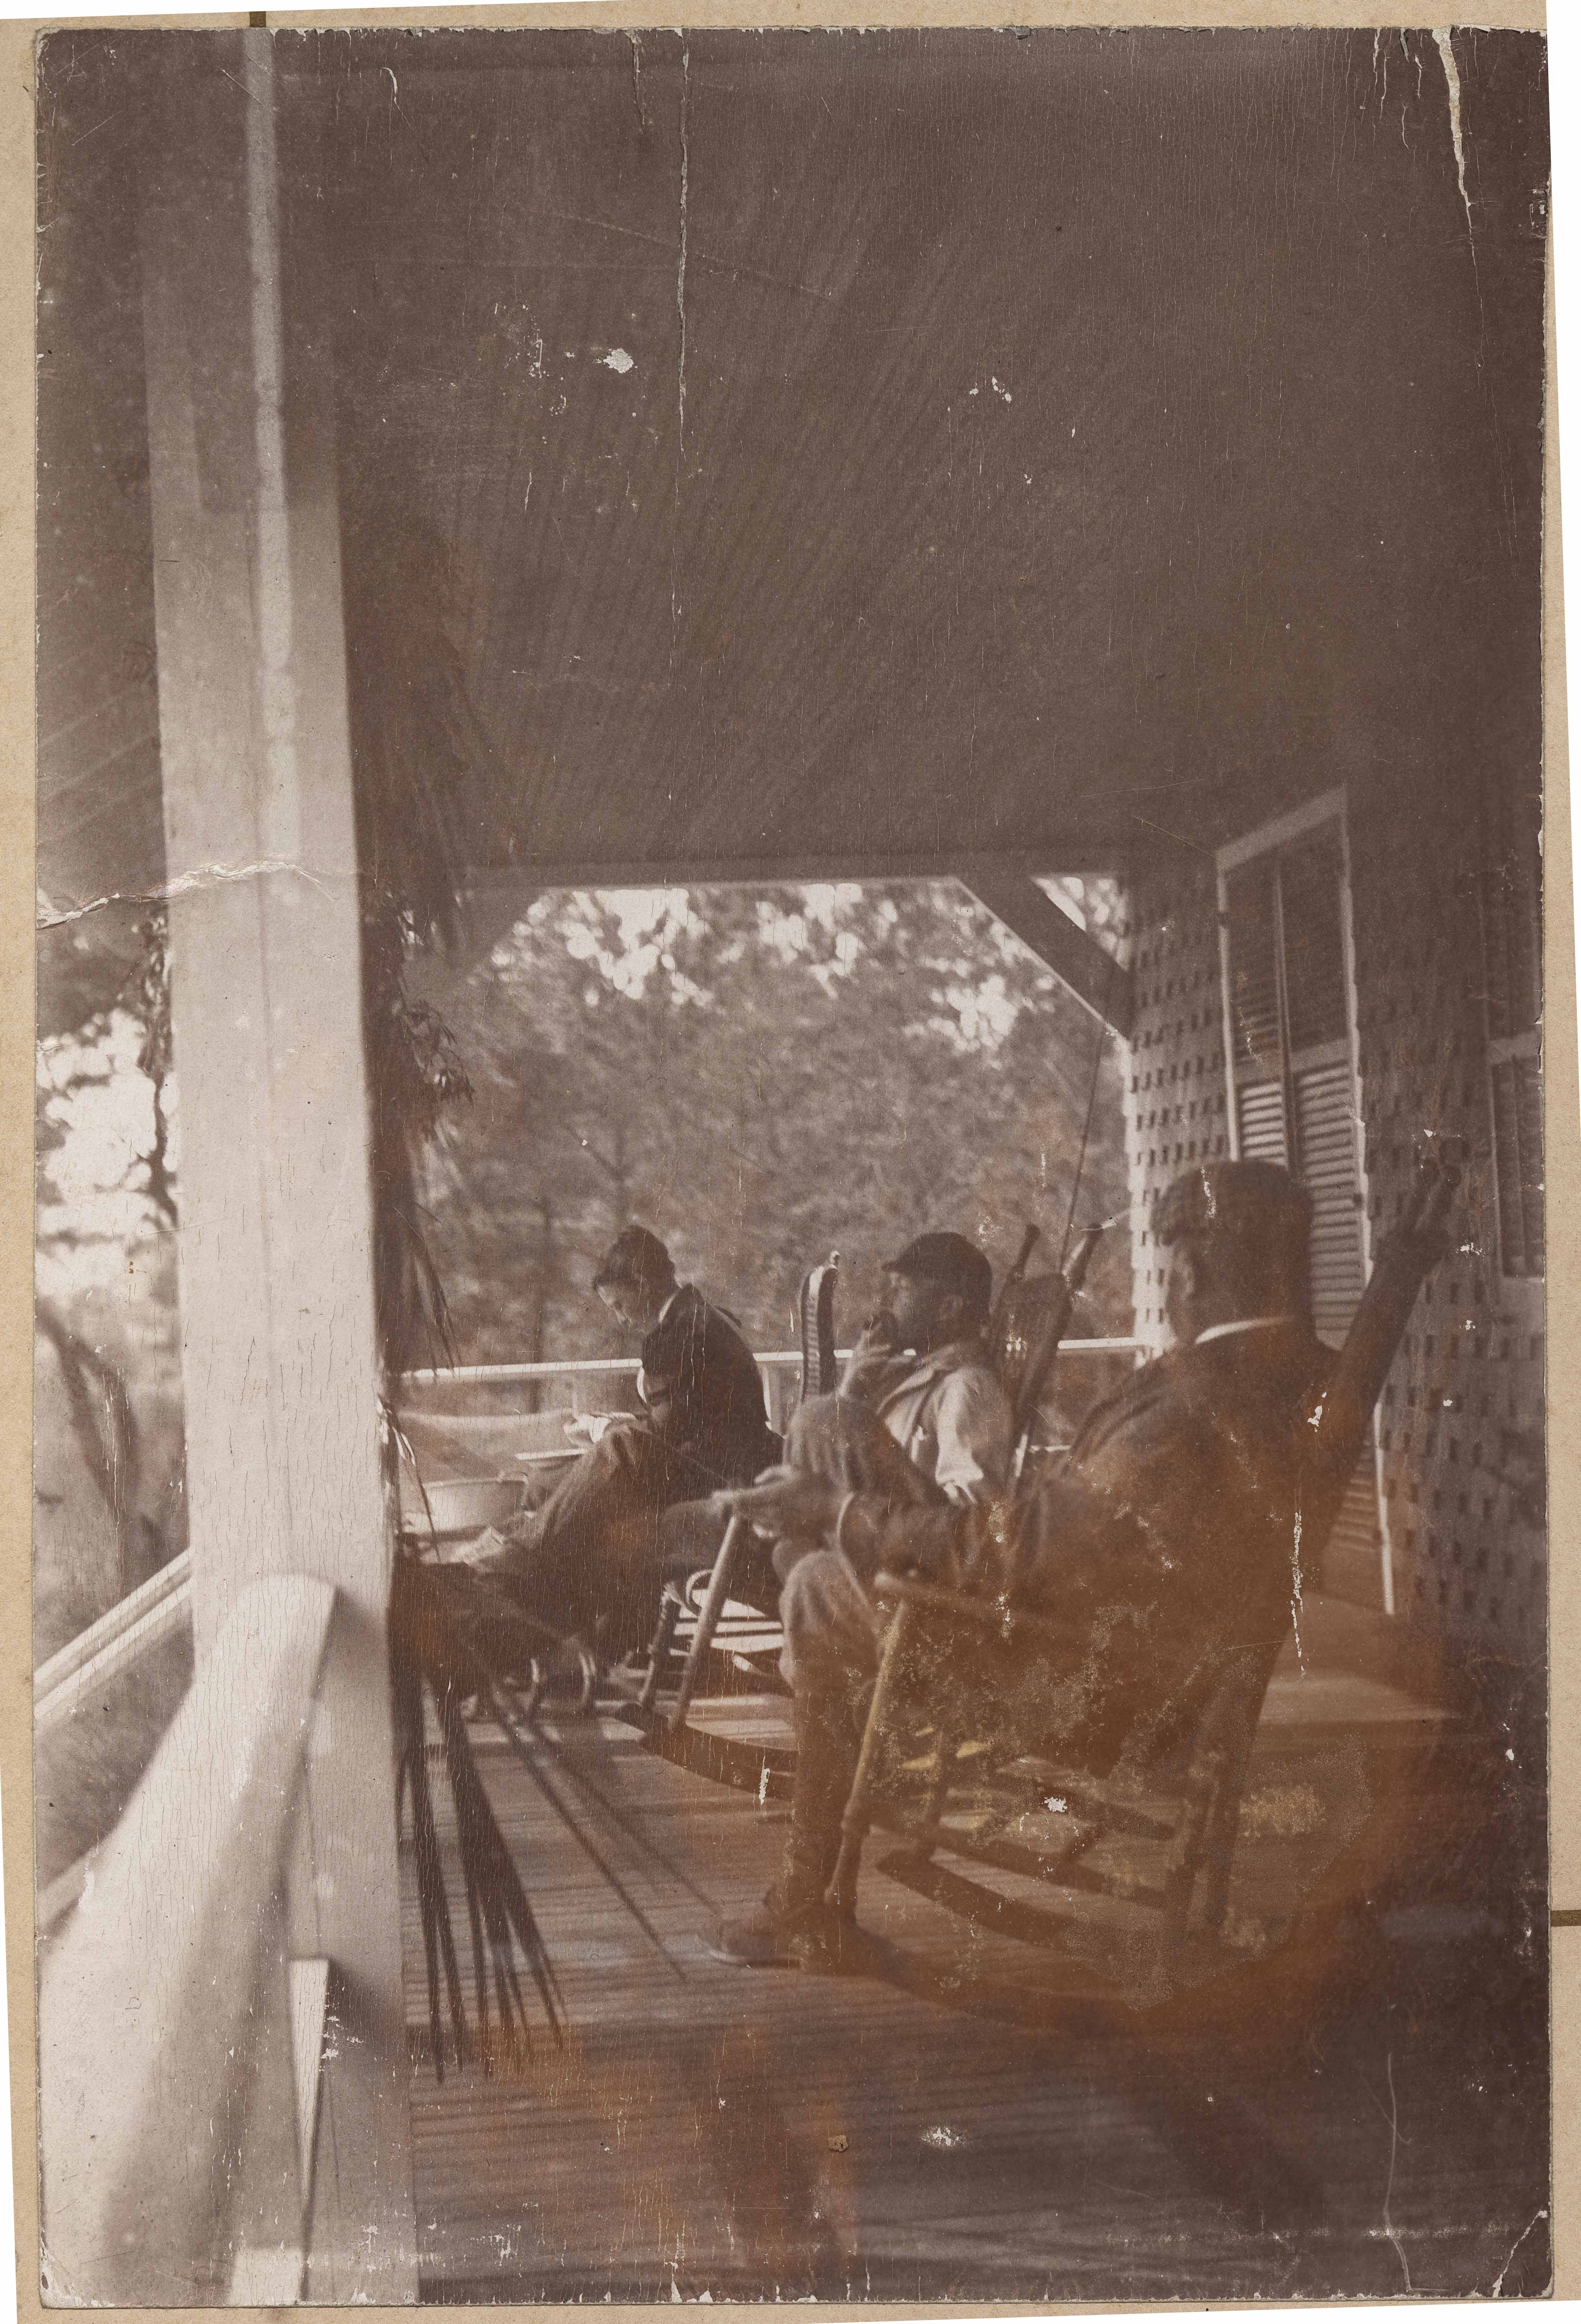 Rocking the time away on the front porch of Halls Island main house